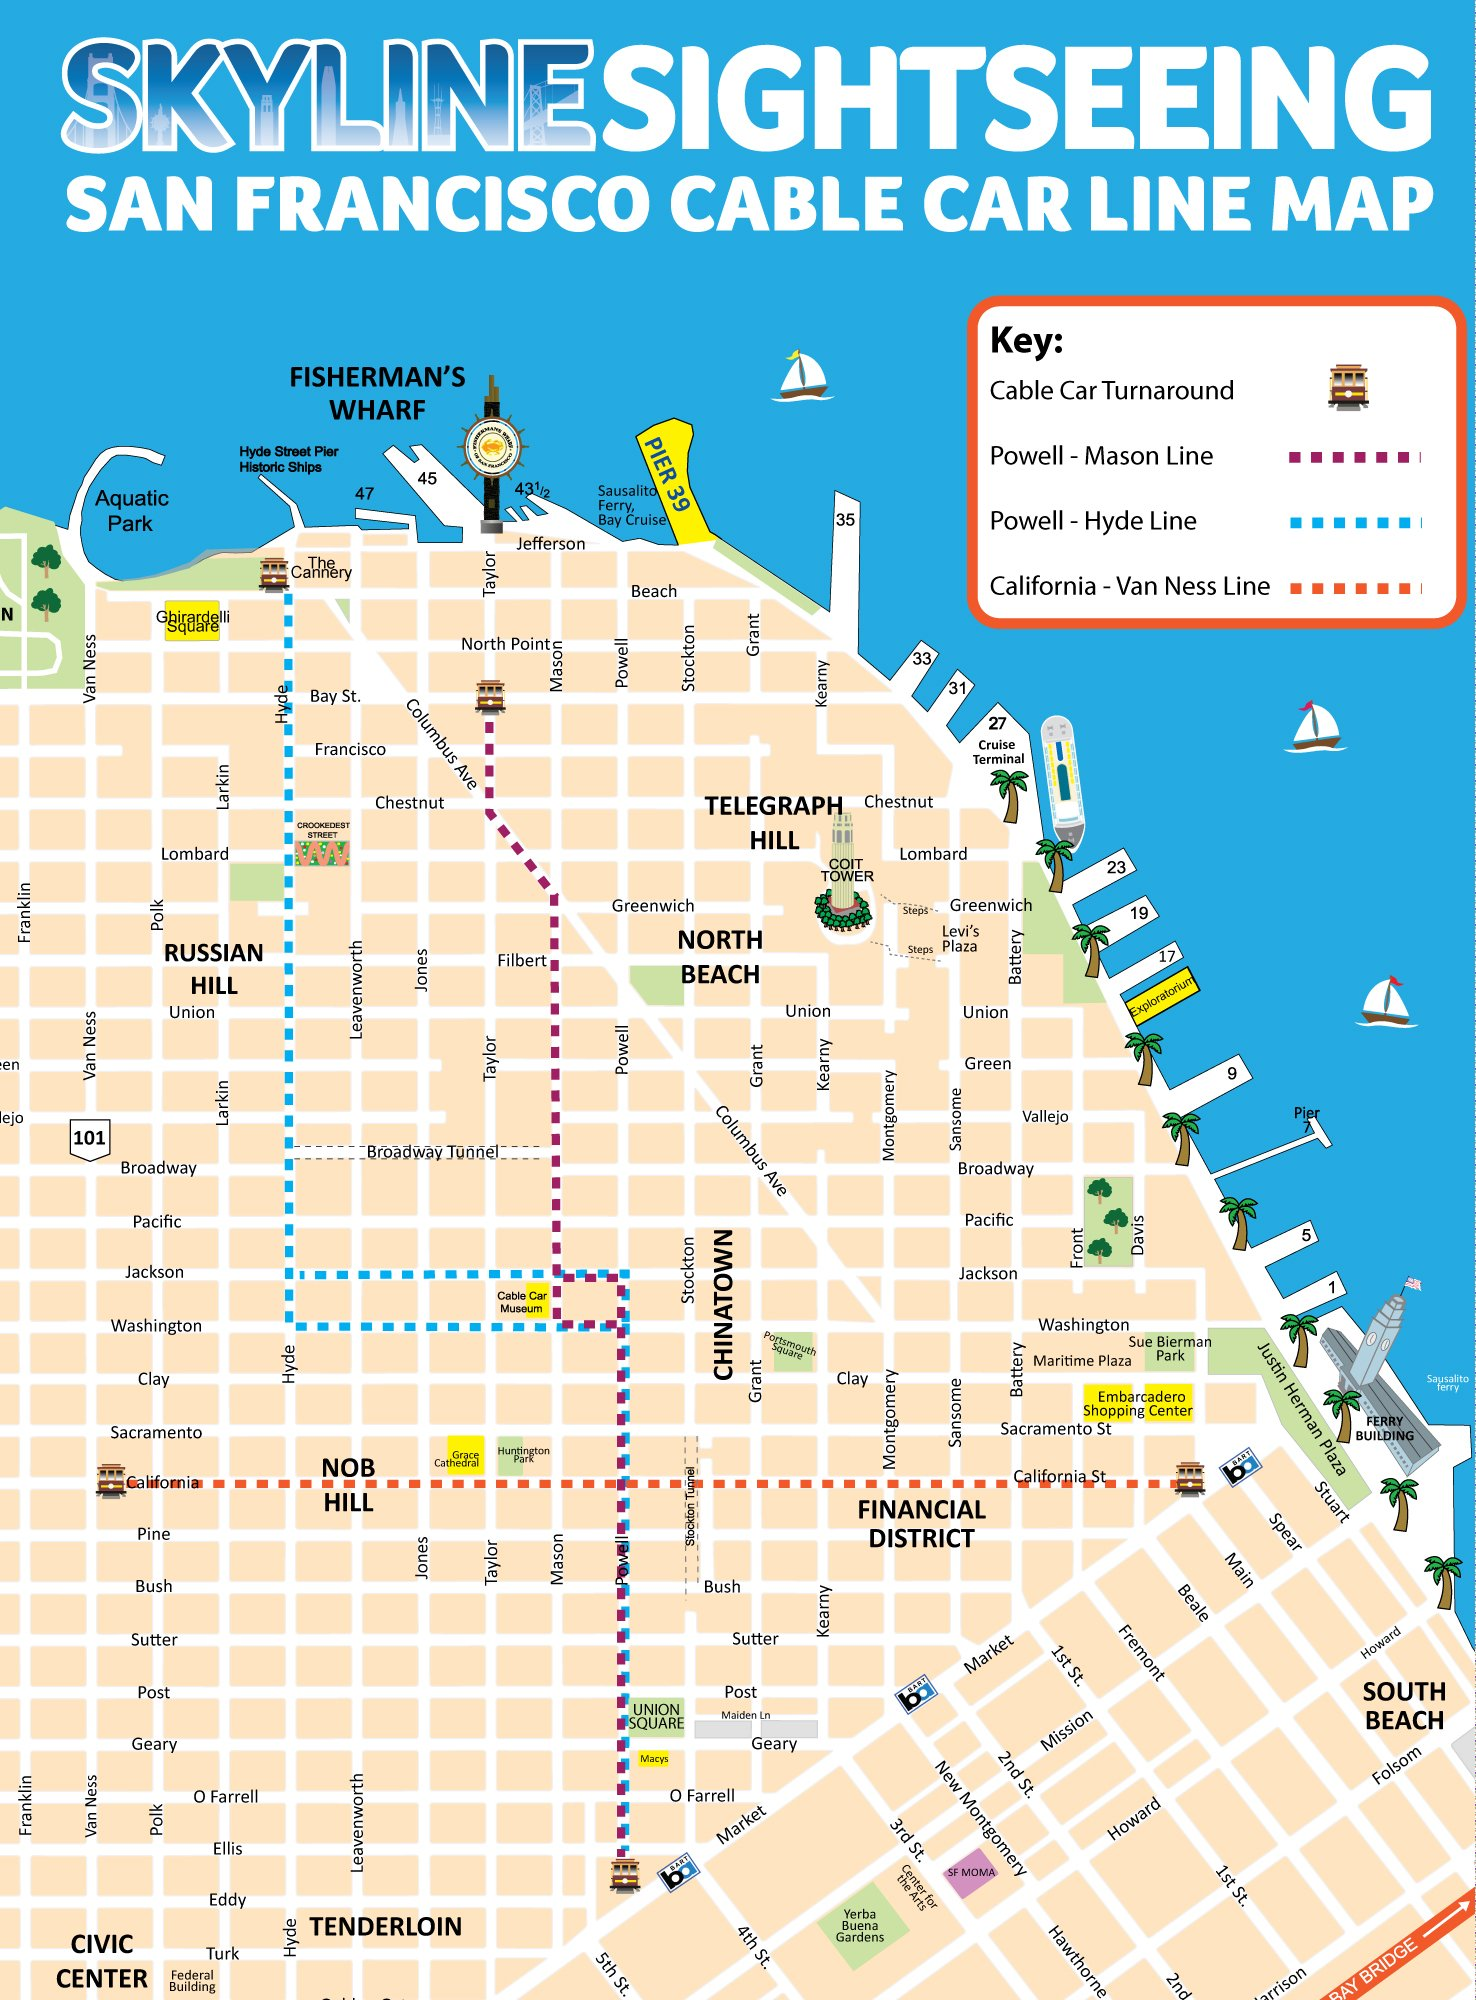 San Francisco Cable Car Line Map - Skyline Sightseeing on